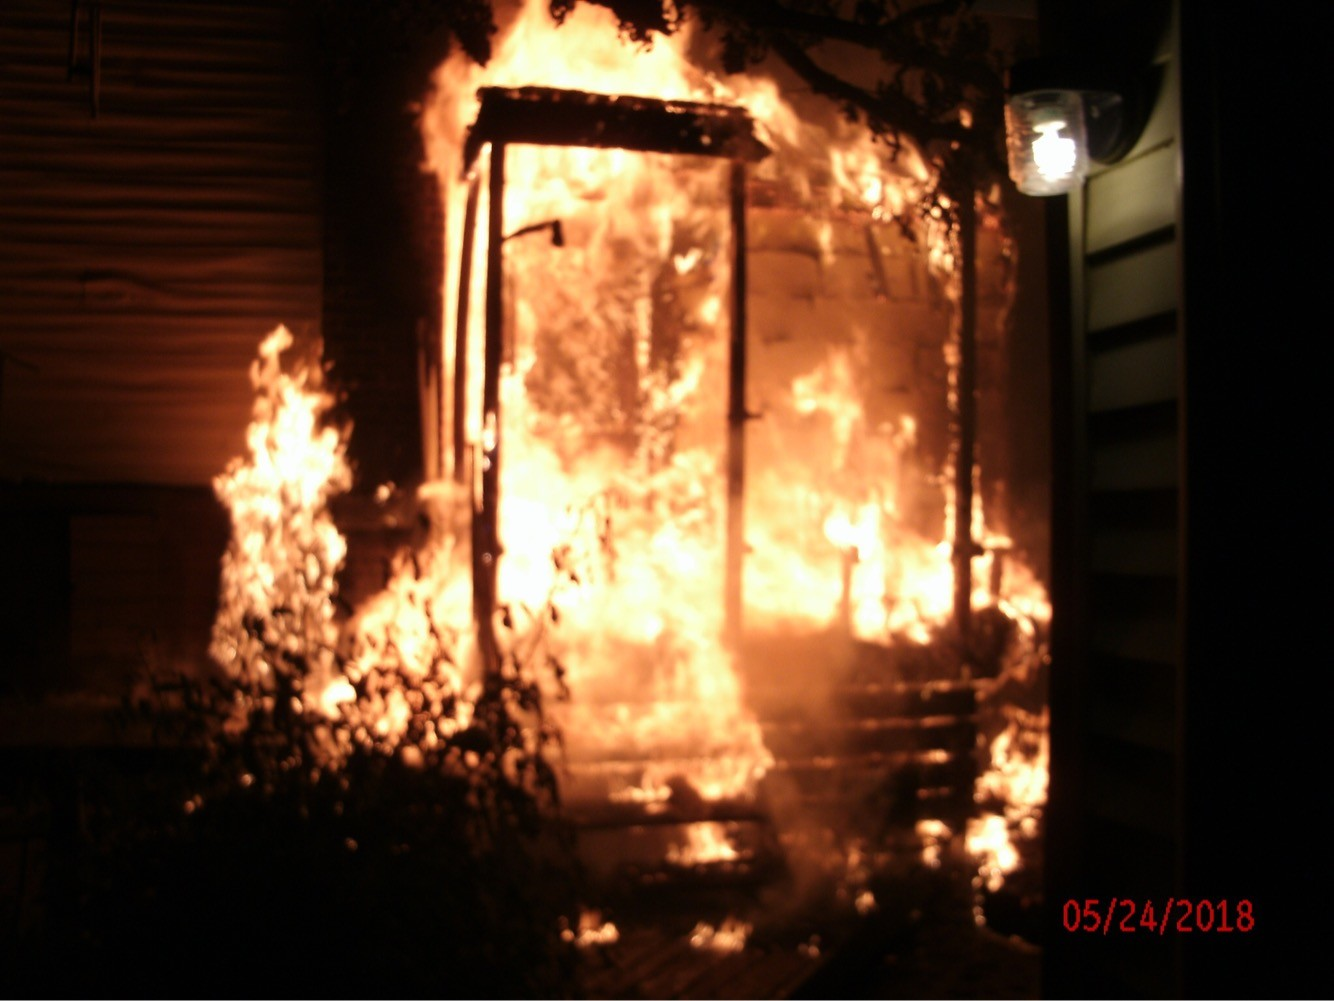 The fire engulfed the rear portion of the house.